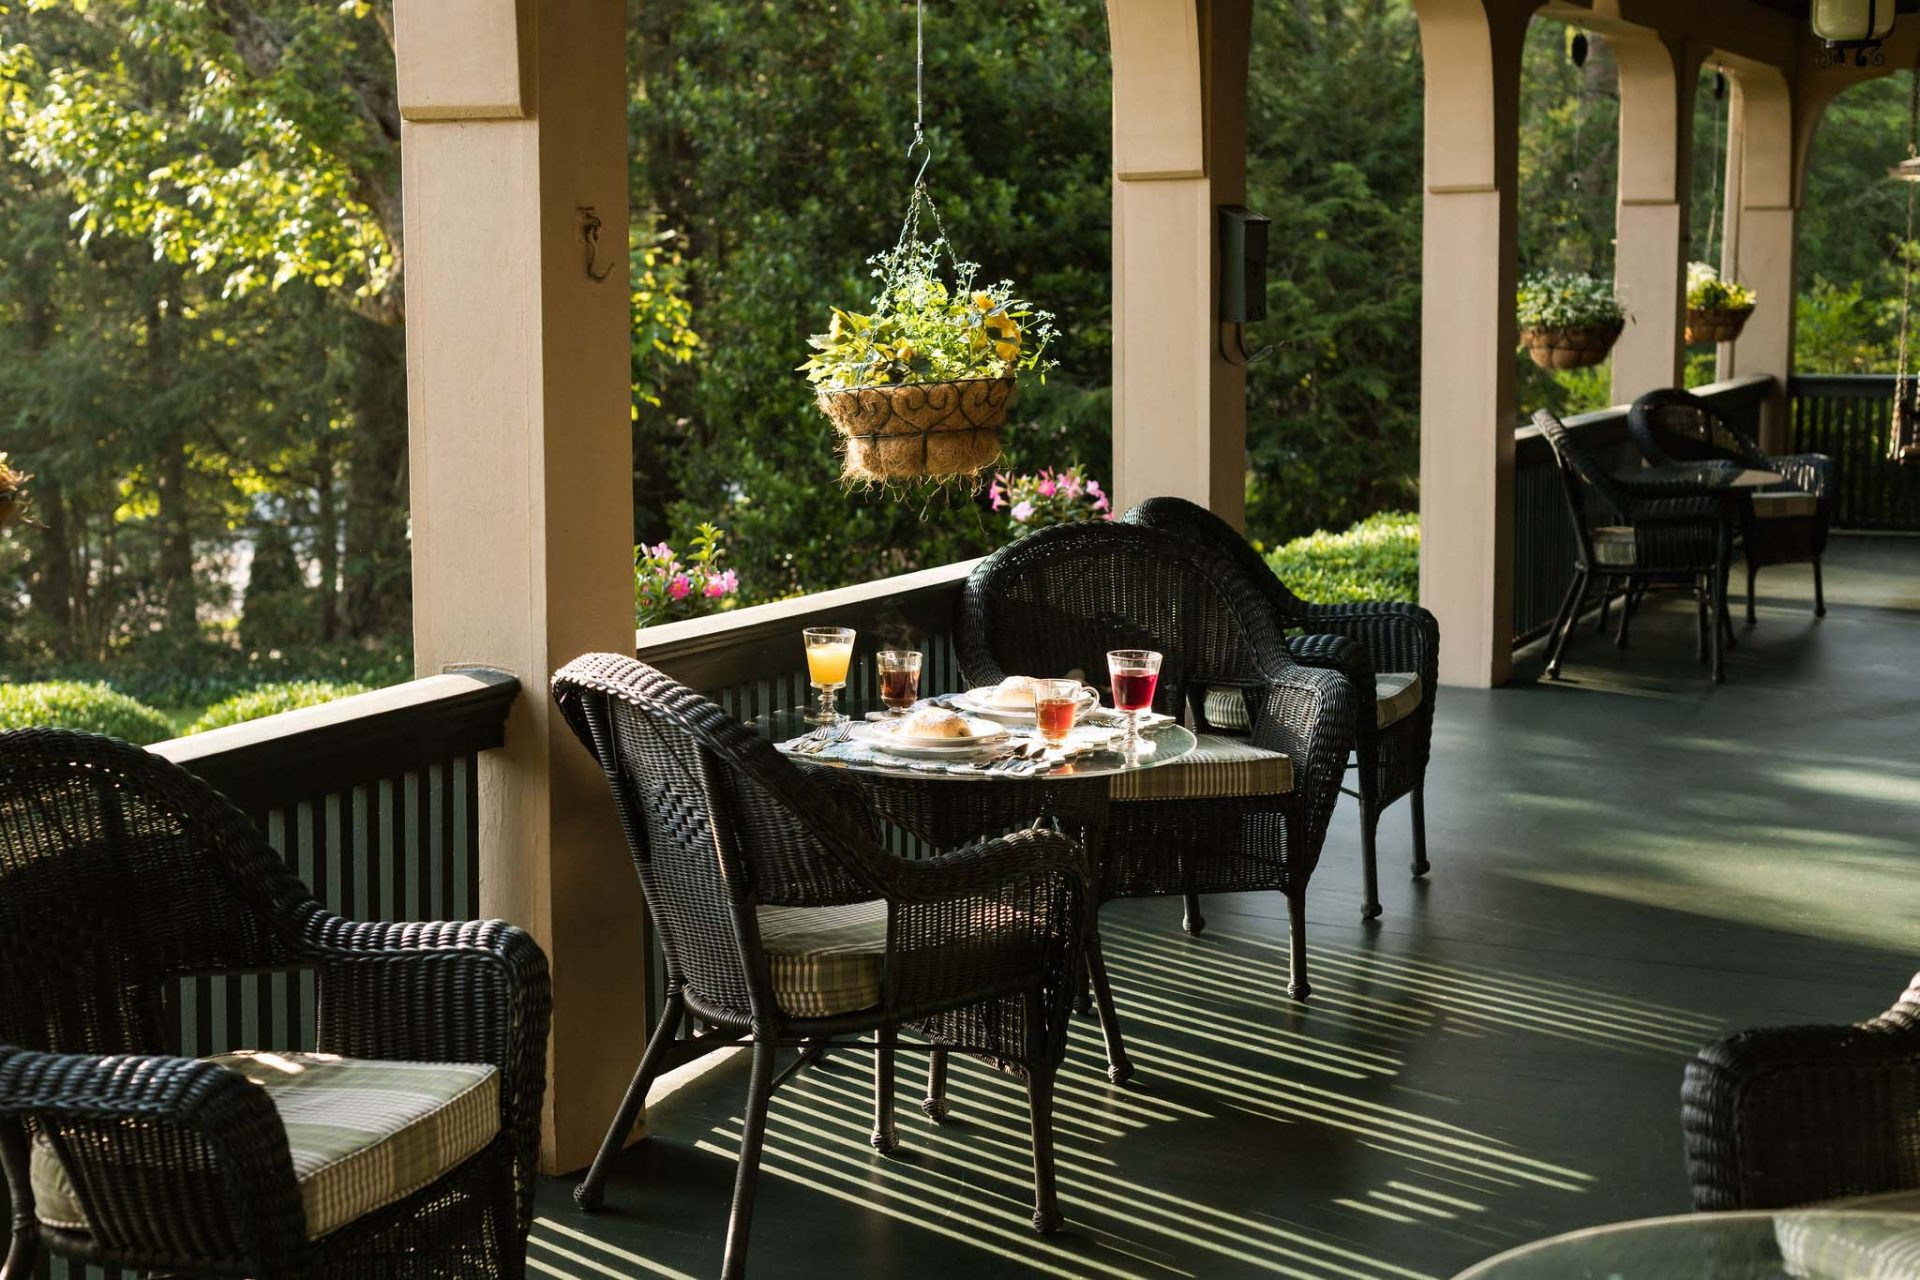 Breakfast served on the porch. A row of rattan tables and chairs. In the background green bushes, flowers hanging in pots from the porch's ceiling.